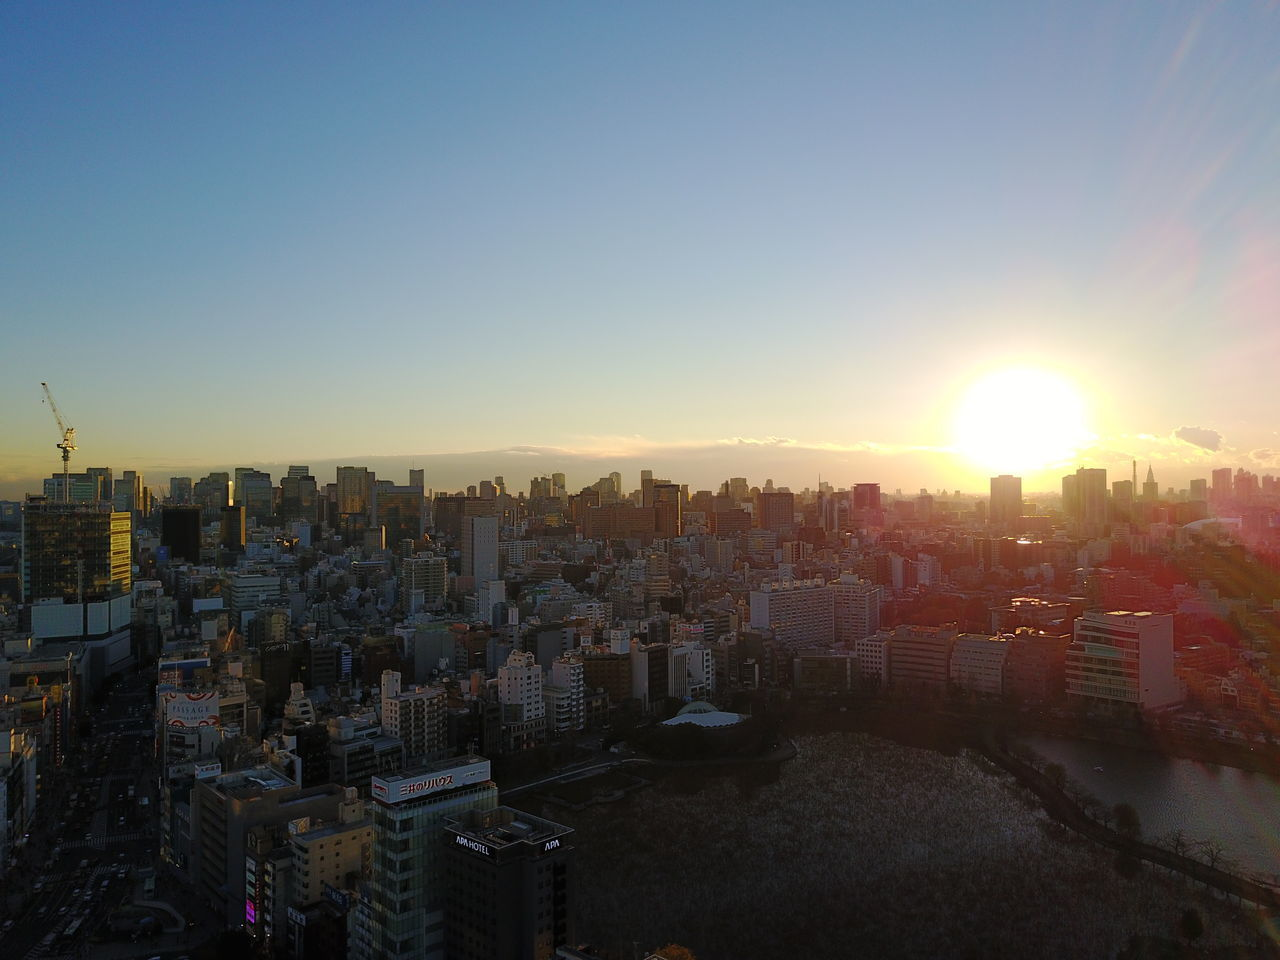 cityscape, city, sunset, architecture, building exterior, sunlight, skyscraper, no people, sun, clear sky, outdoors, built structure, modern, sky, day